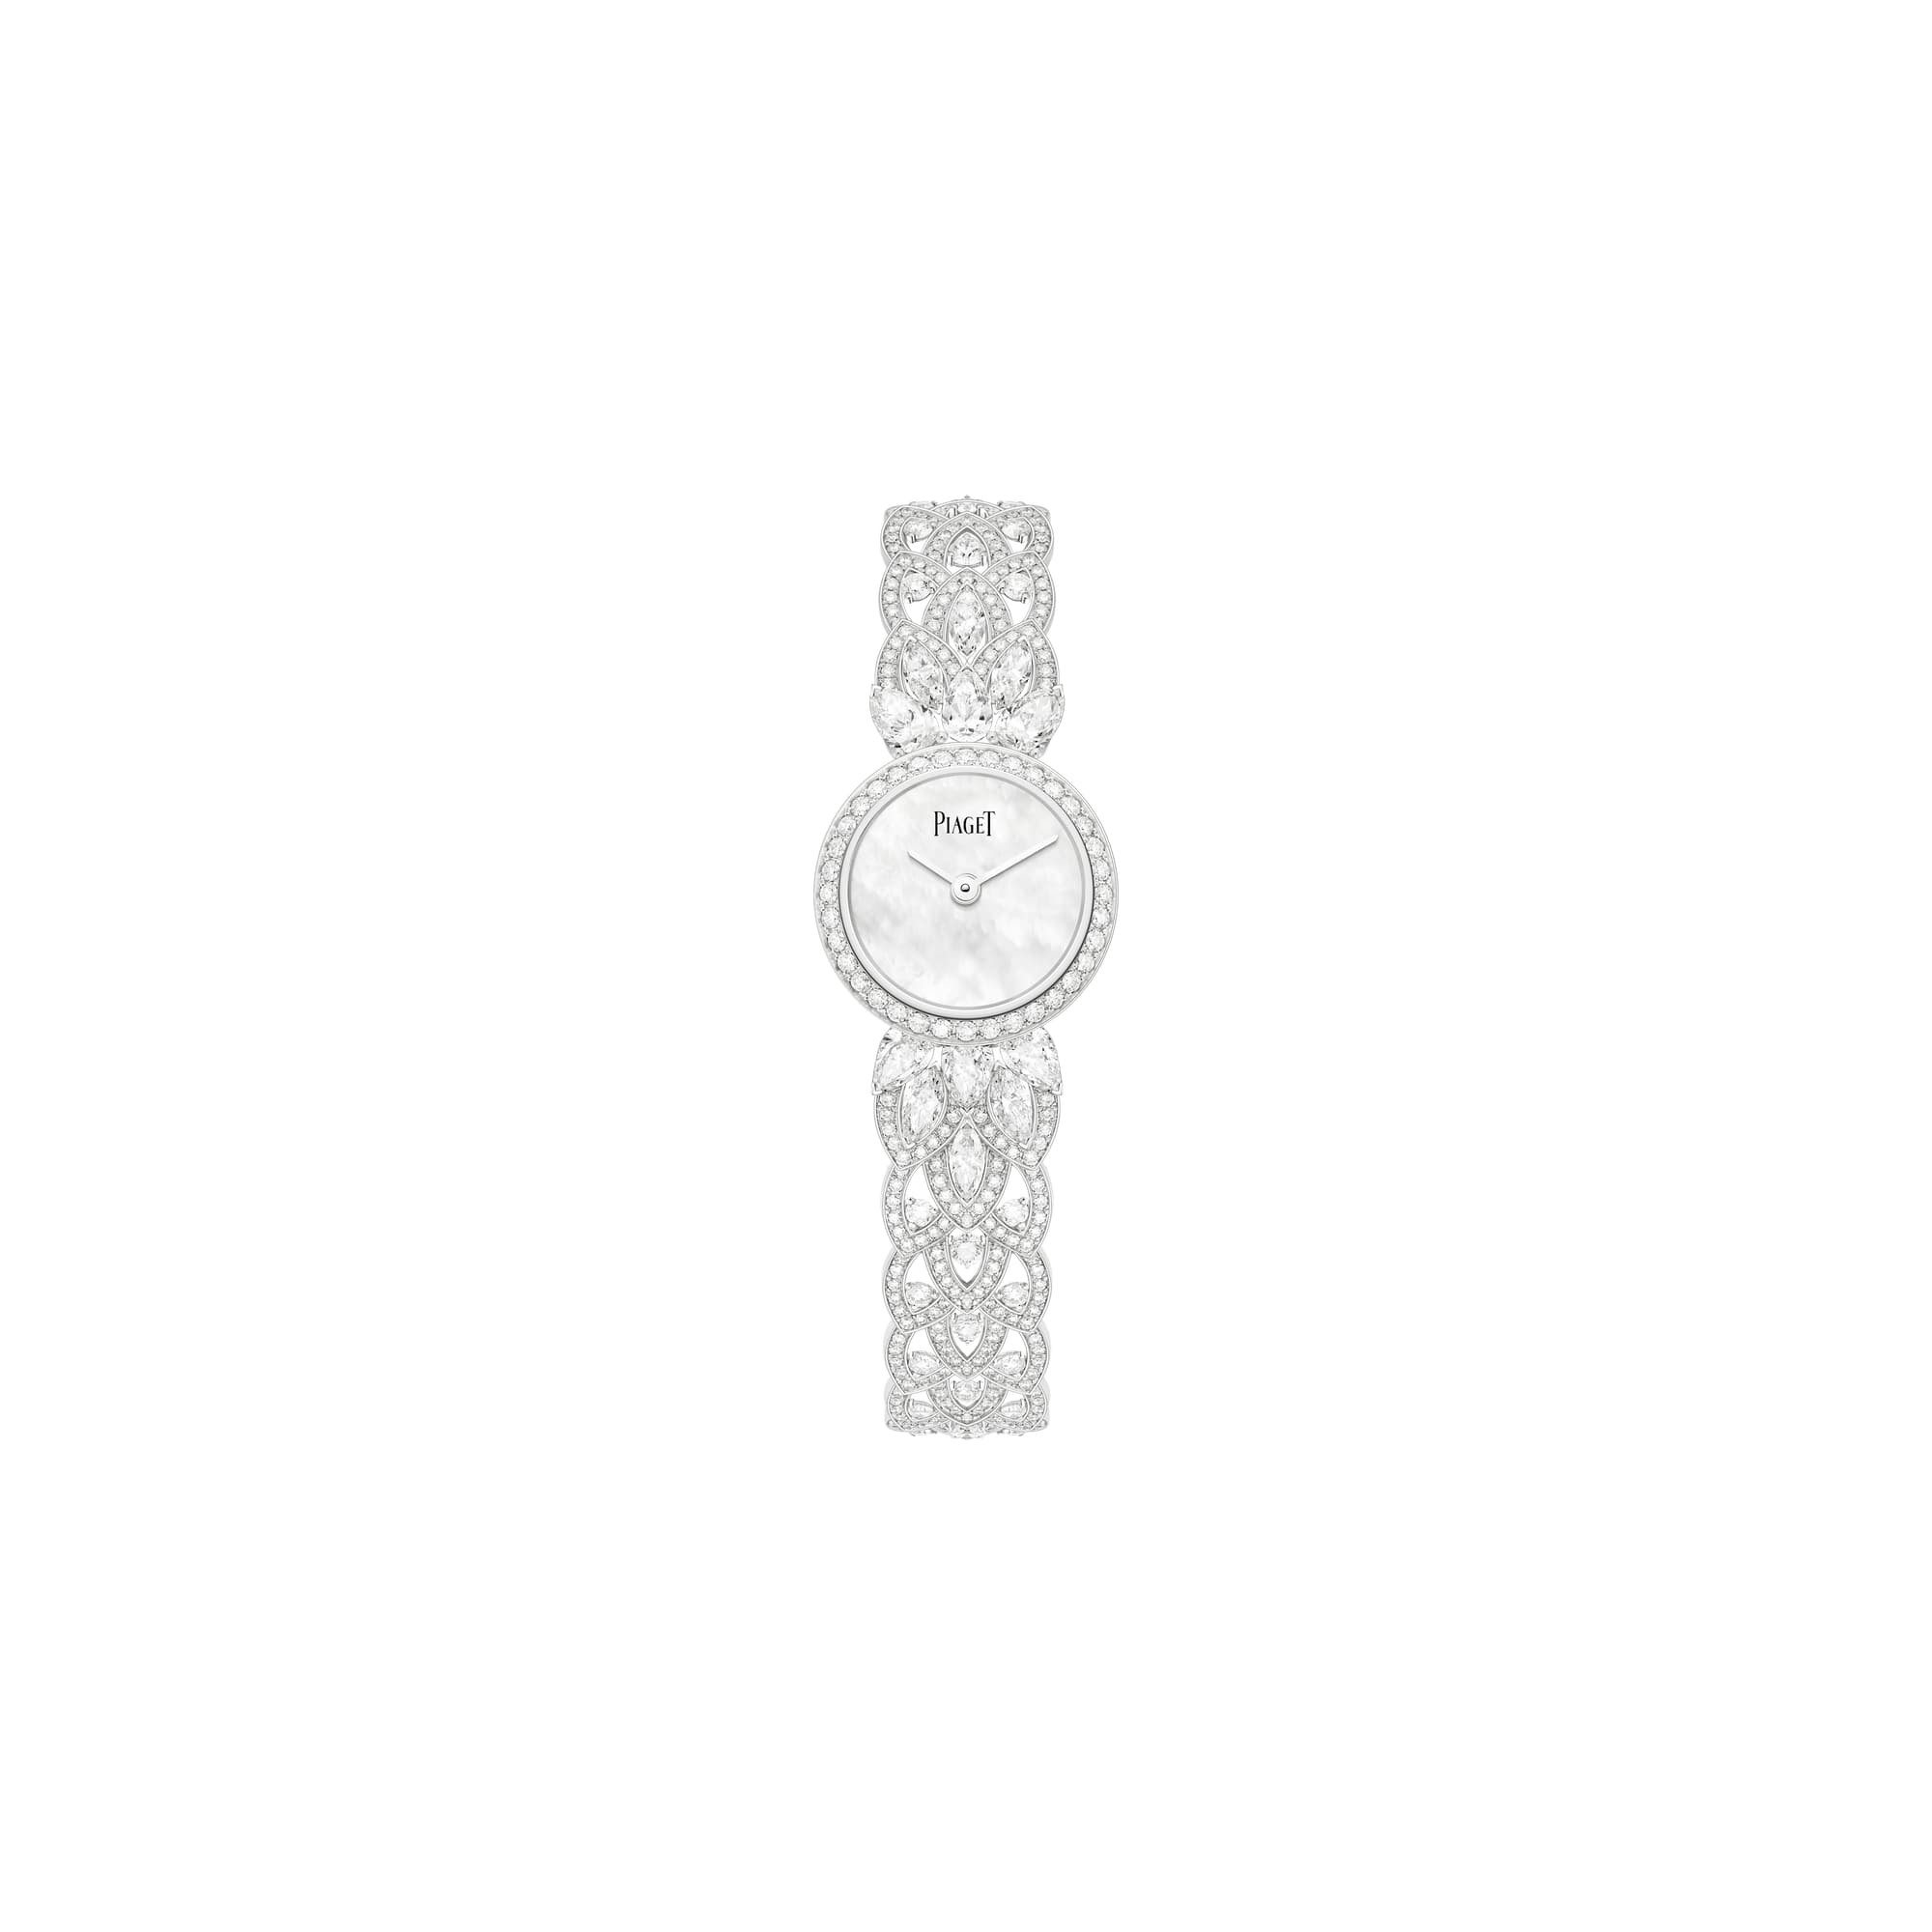 piaget high jewellery gold diamond watch